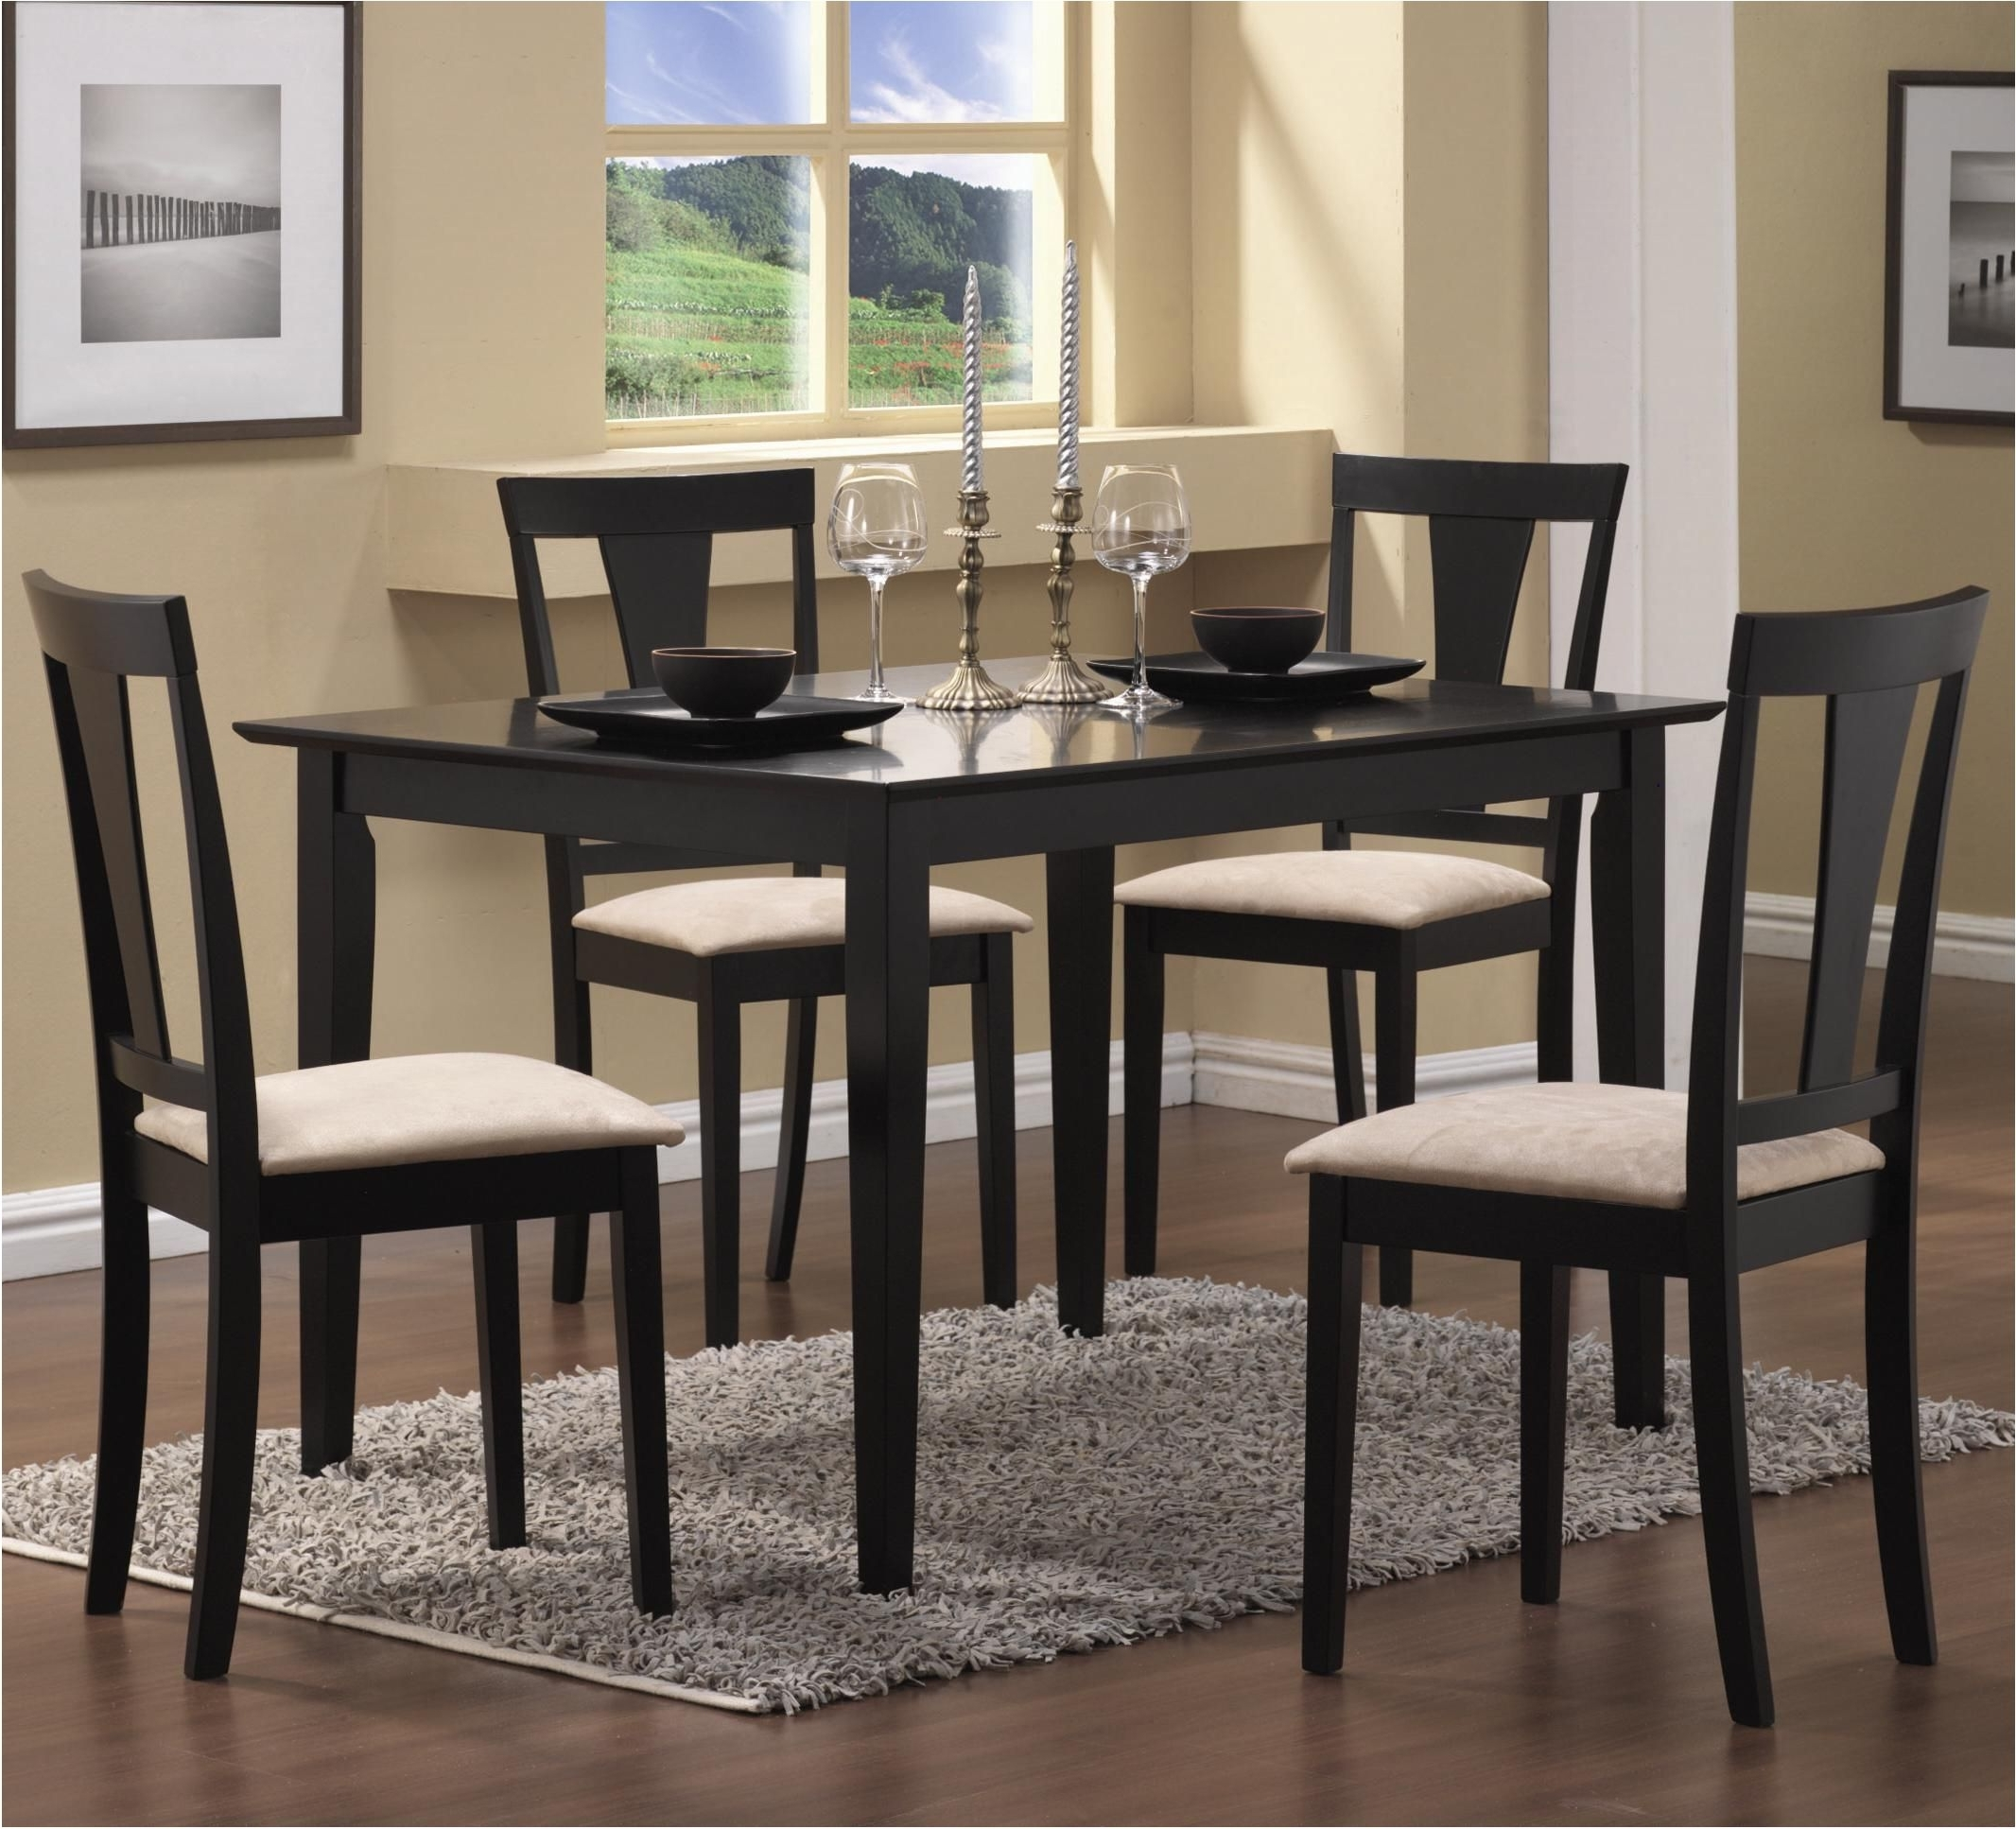 Terrific Cool Cheap Small Dining Sets 7 Round Oak Table Kitchen 4 Pertaining To Most Popular Cheap Dining Sets (View 22 of 25)